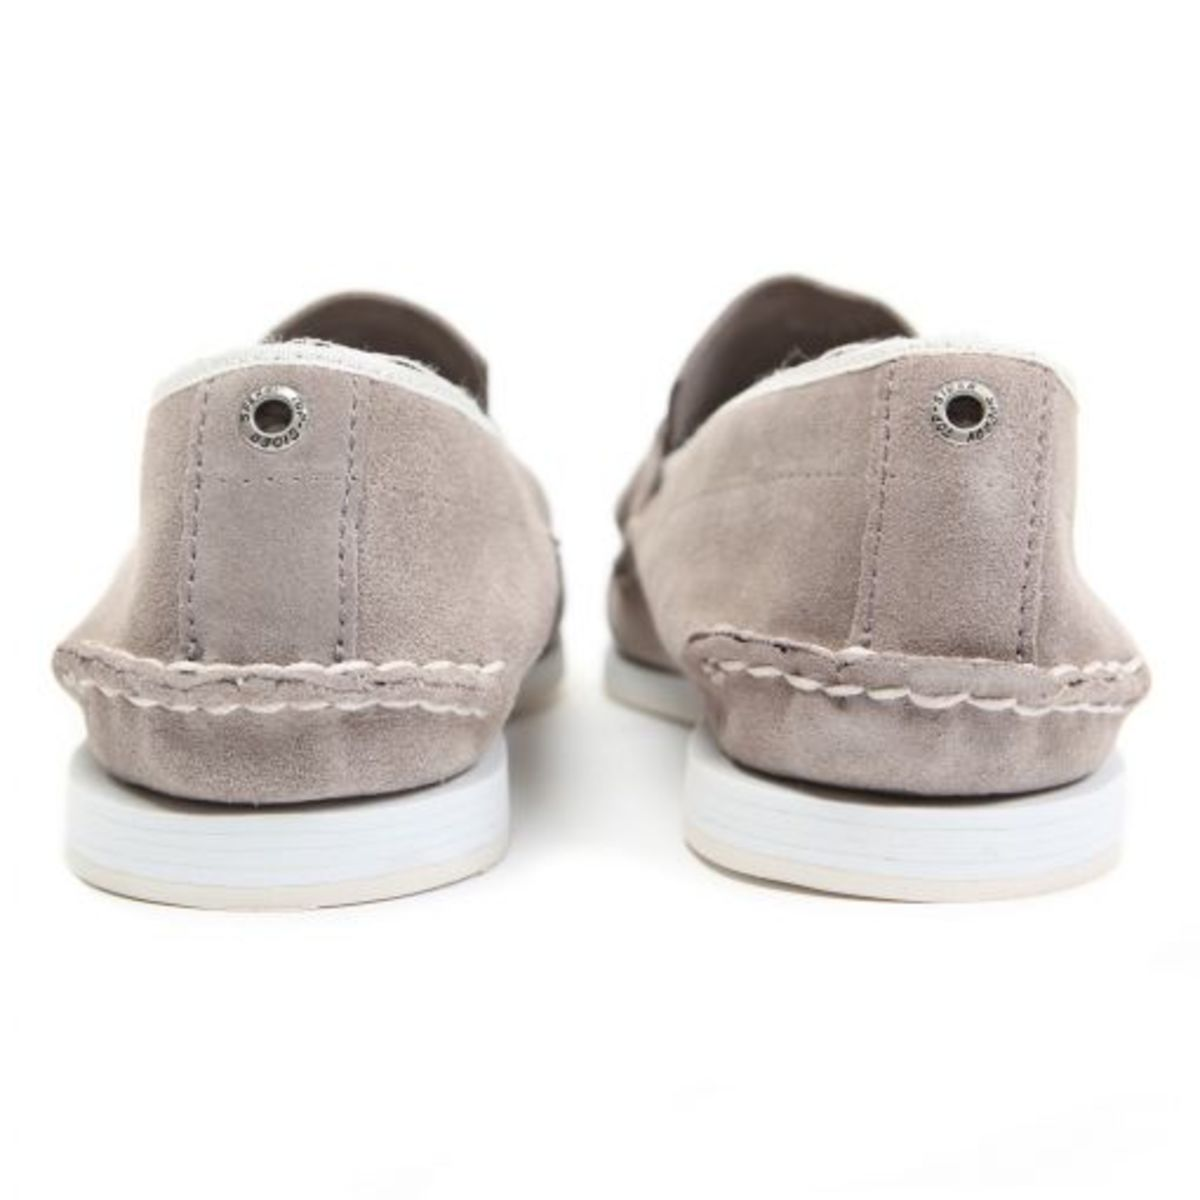 band_of_outsider_sperry_topsider_7